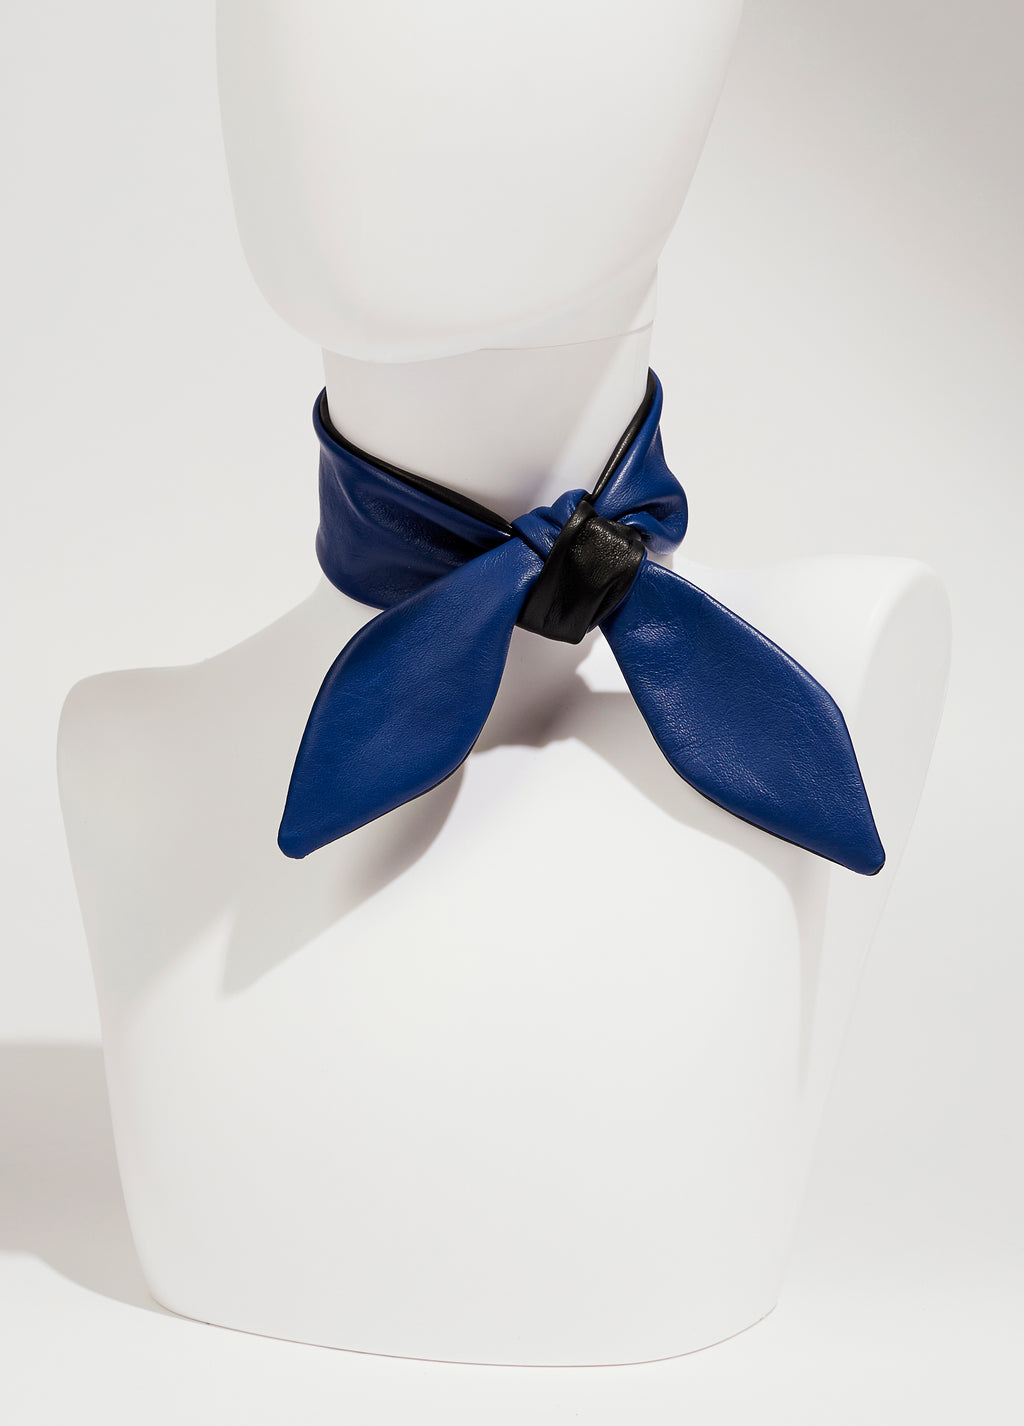 Leather Necktie - Blue/black - UNCUFFED